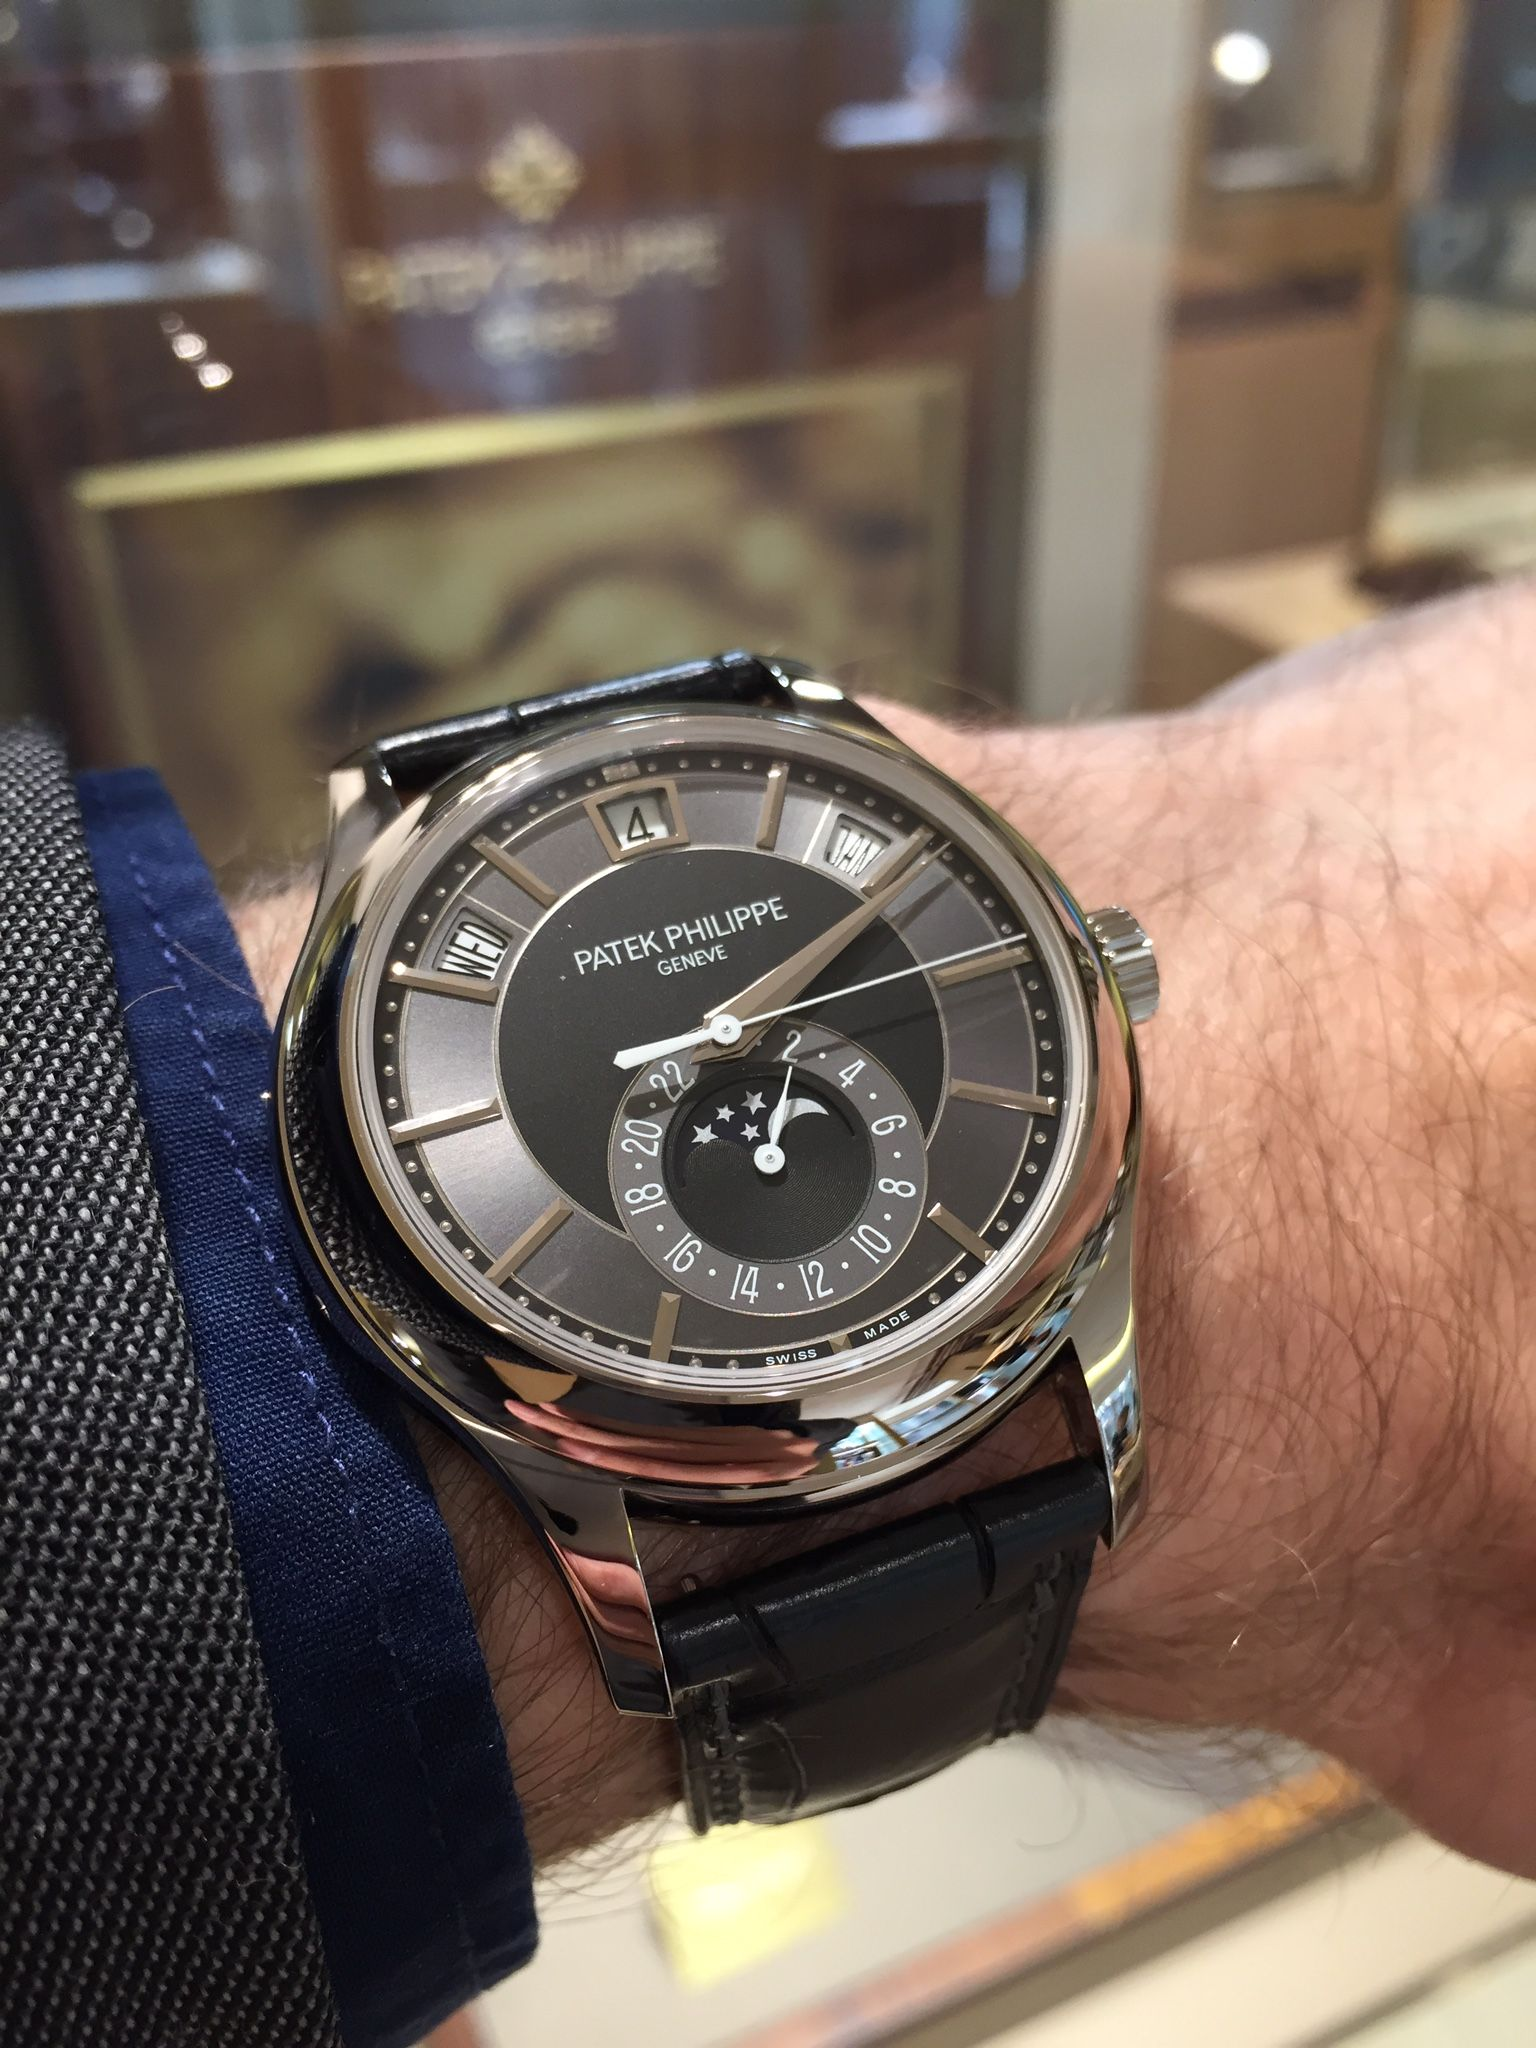 Pin By Randy Spearman On Clocks In 2019 Rolex Watches Watches